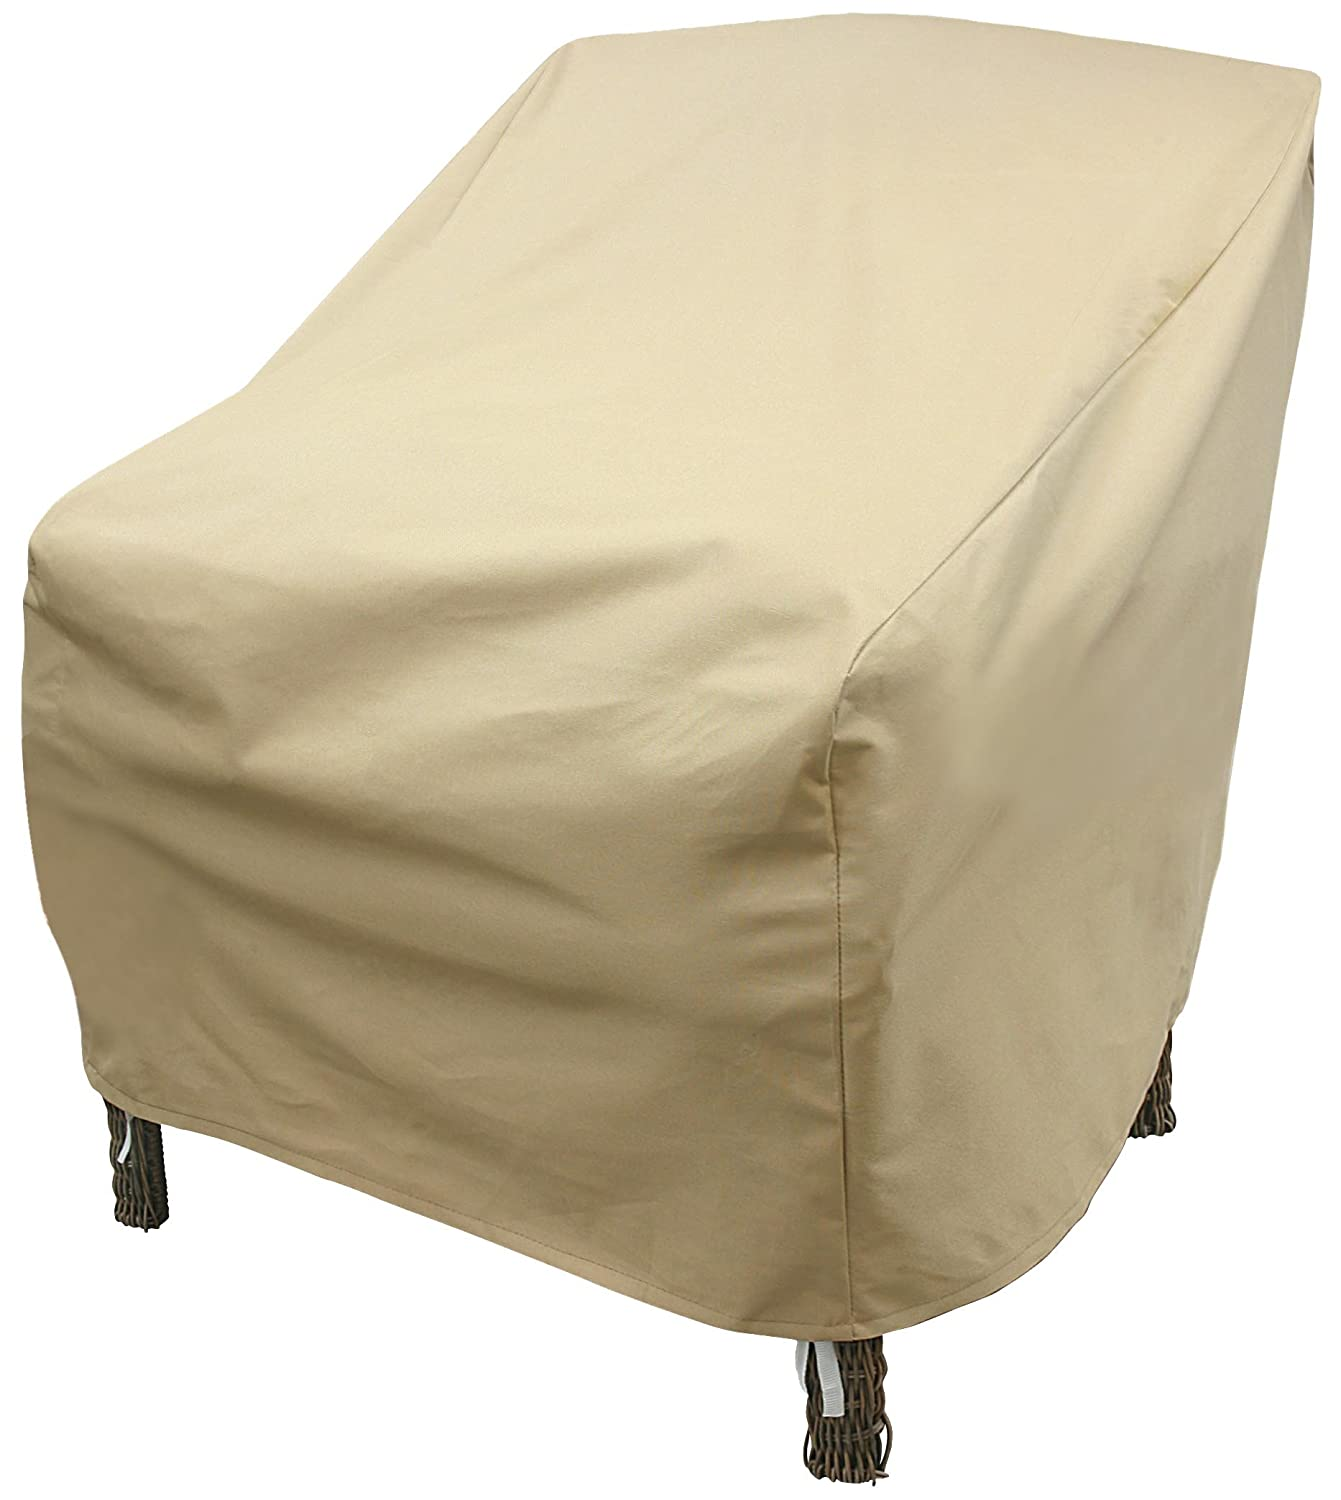 Modern Leisure Patio Chair Cover  New Free Shipping  eBay